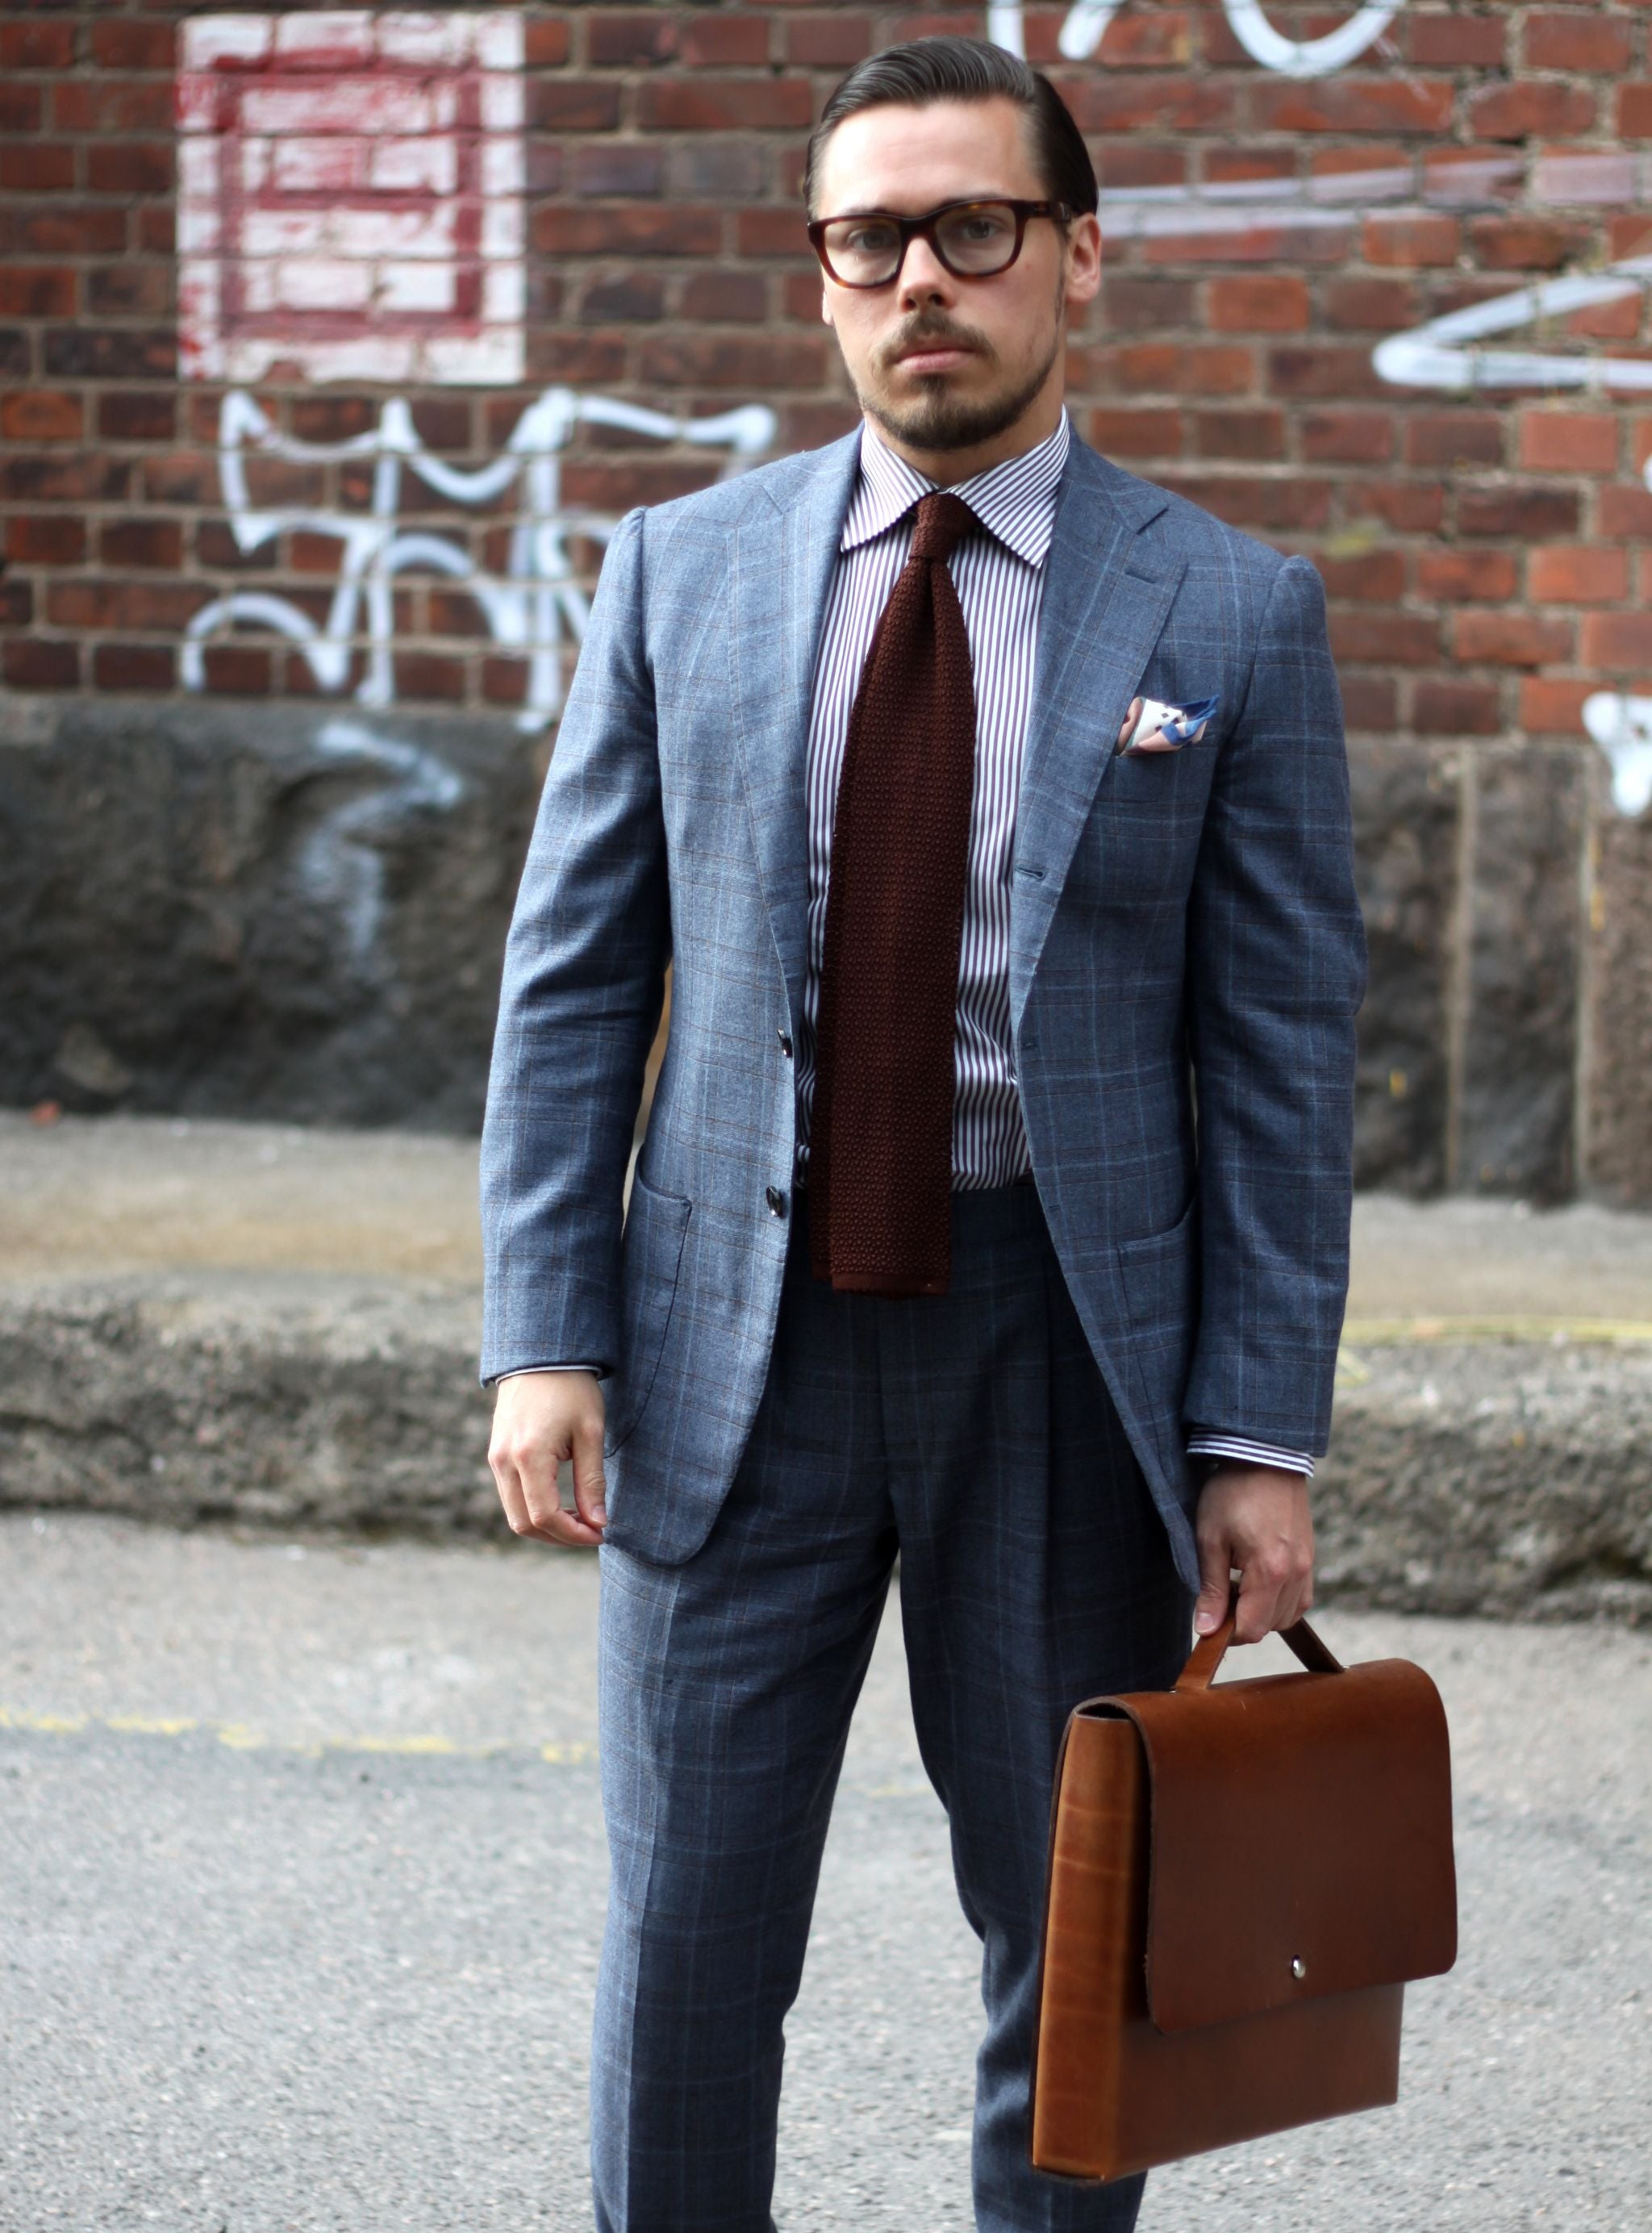 Brown knit tie with suit and striped shirt